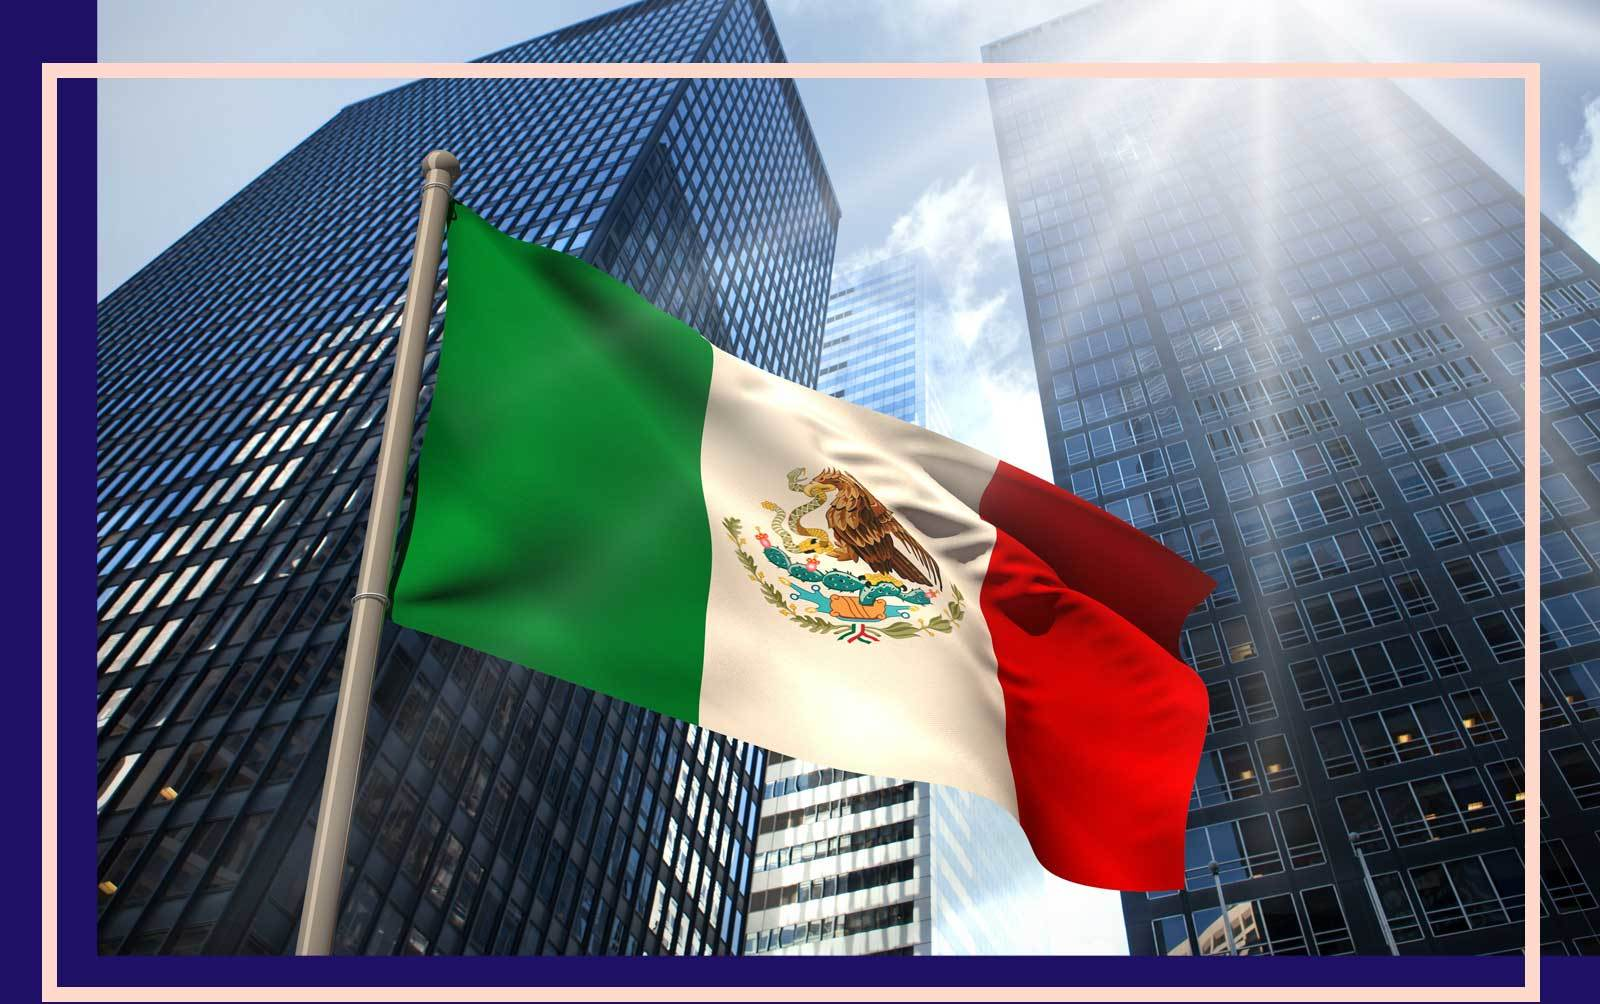 Pictured of Mexico City with the Mexico flag